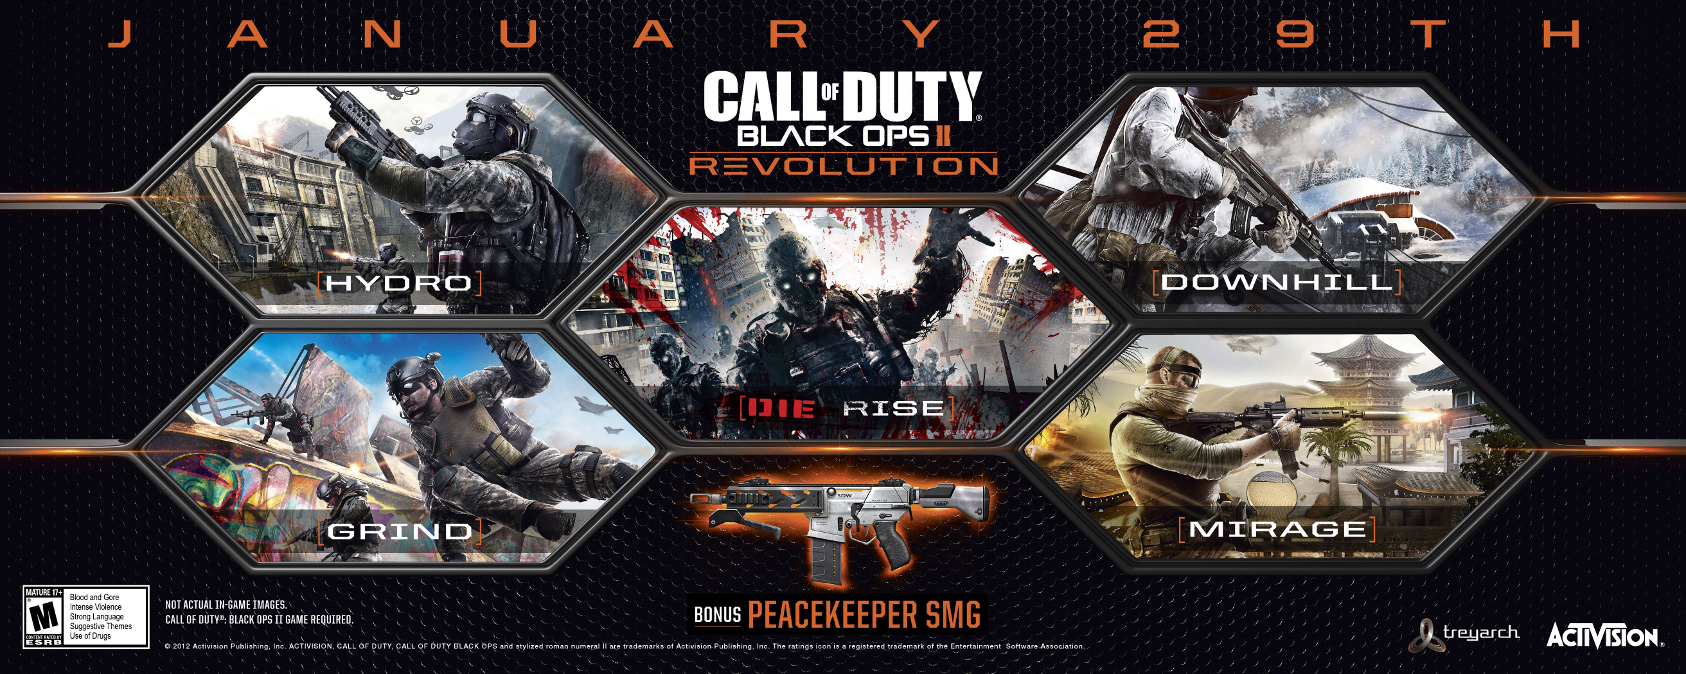 Revolution DLC Map Pack Announced   Activision Community